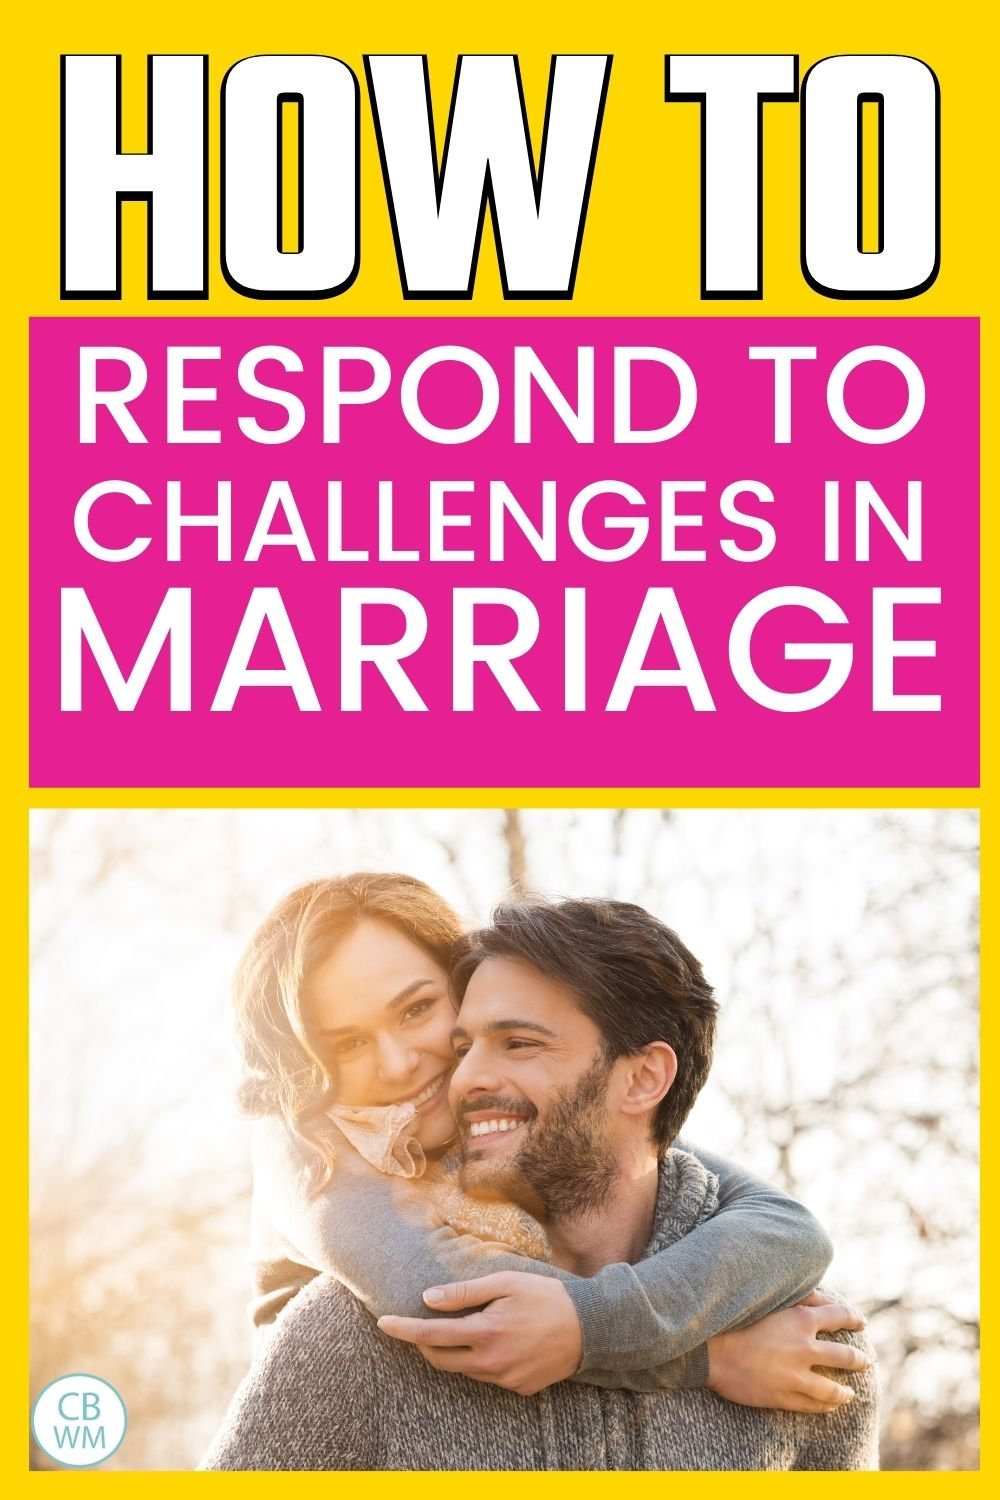 Respond to challenges in marriage